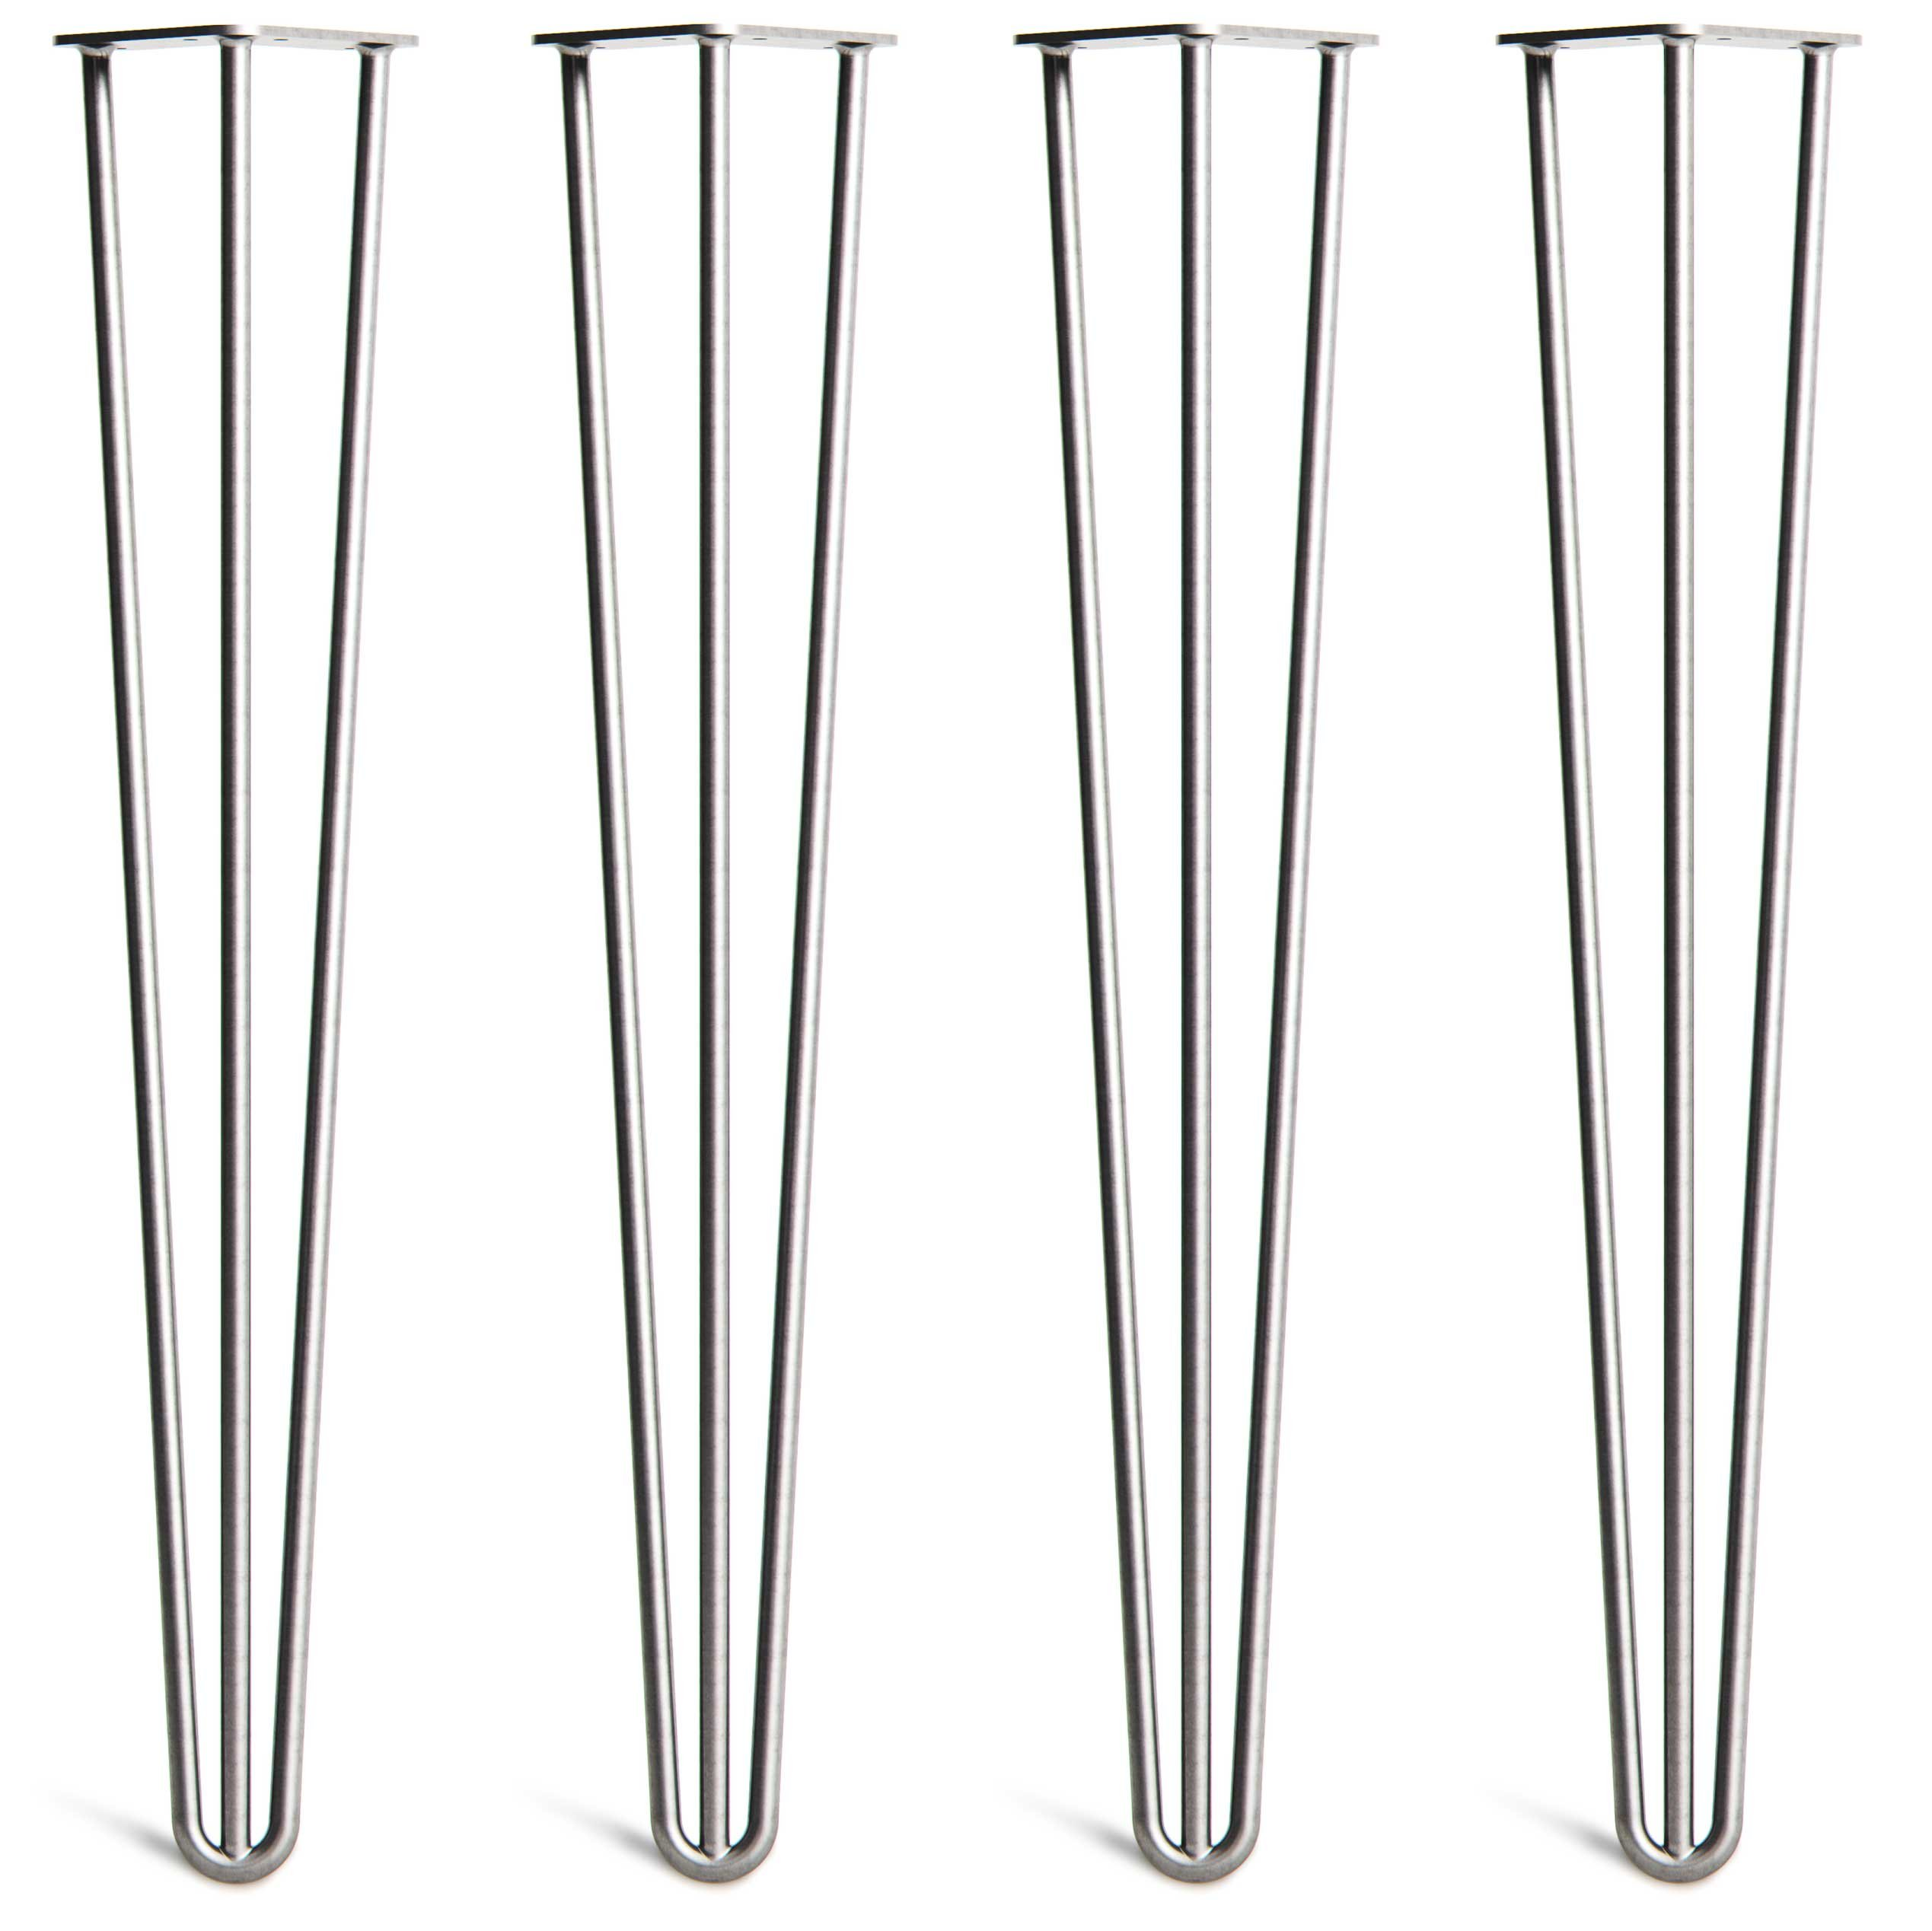 4 x Heavy Duty Hairpin Table Legs – Superior Double Weld Steel Construction With Free Screws, Build Guide & Protector Feet, Worth $10! – Mid-Century Modern Style – 16'' To 40'', All Finishes (1/2 inch)